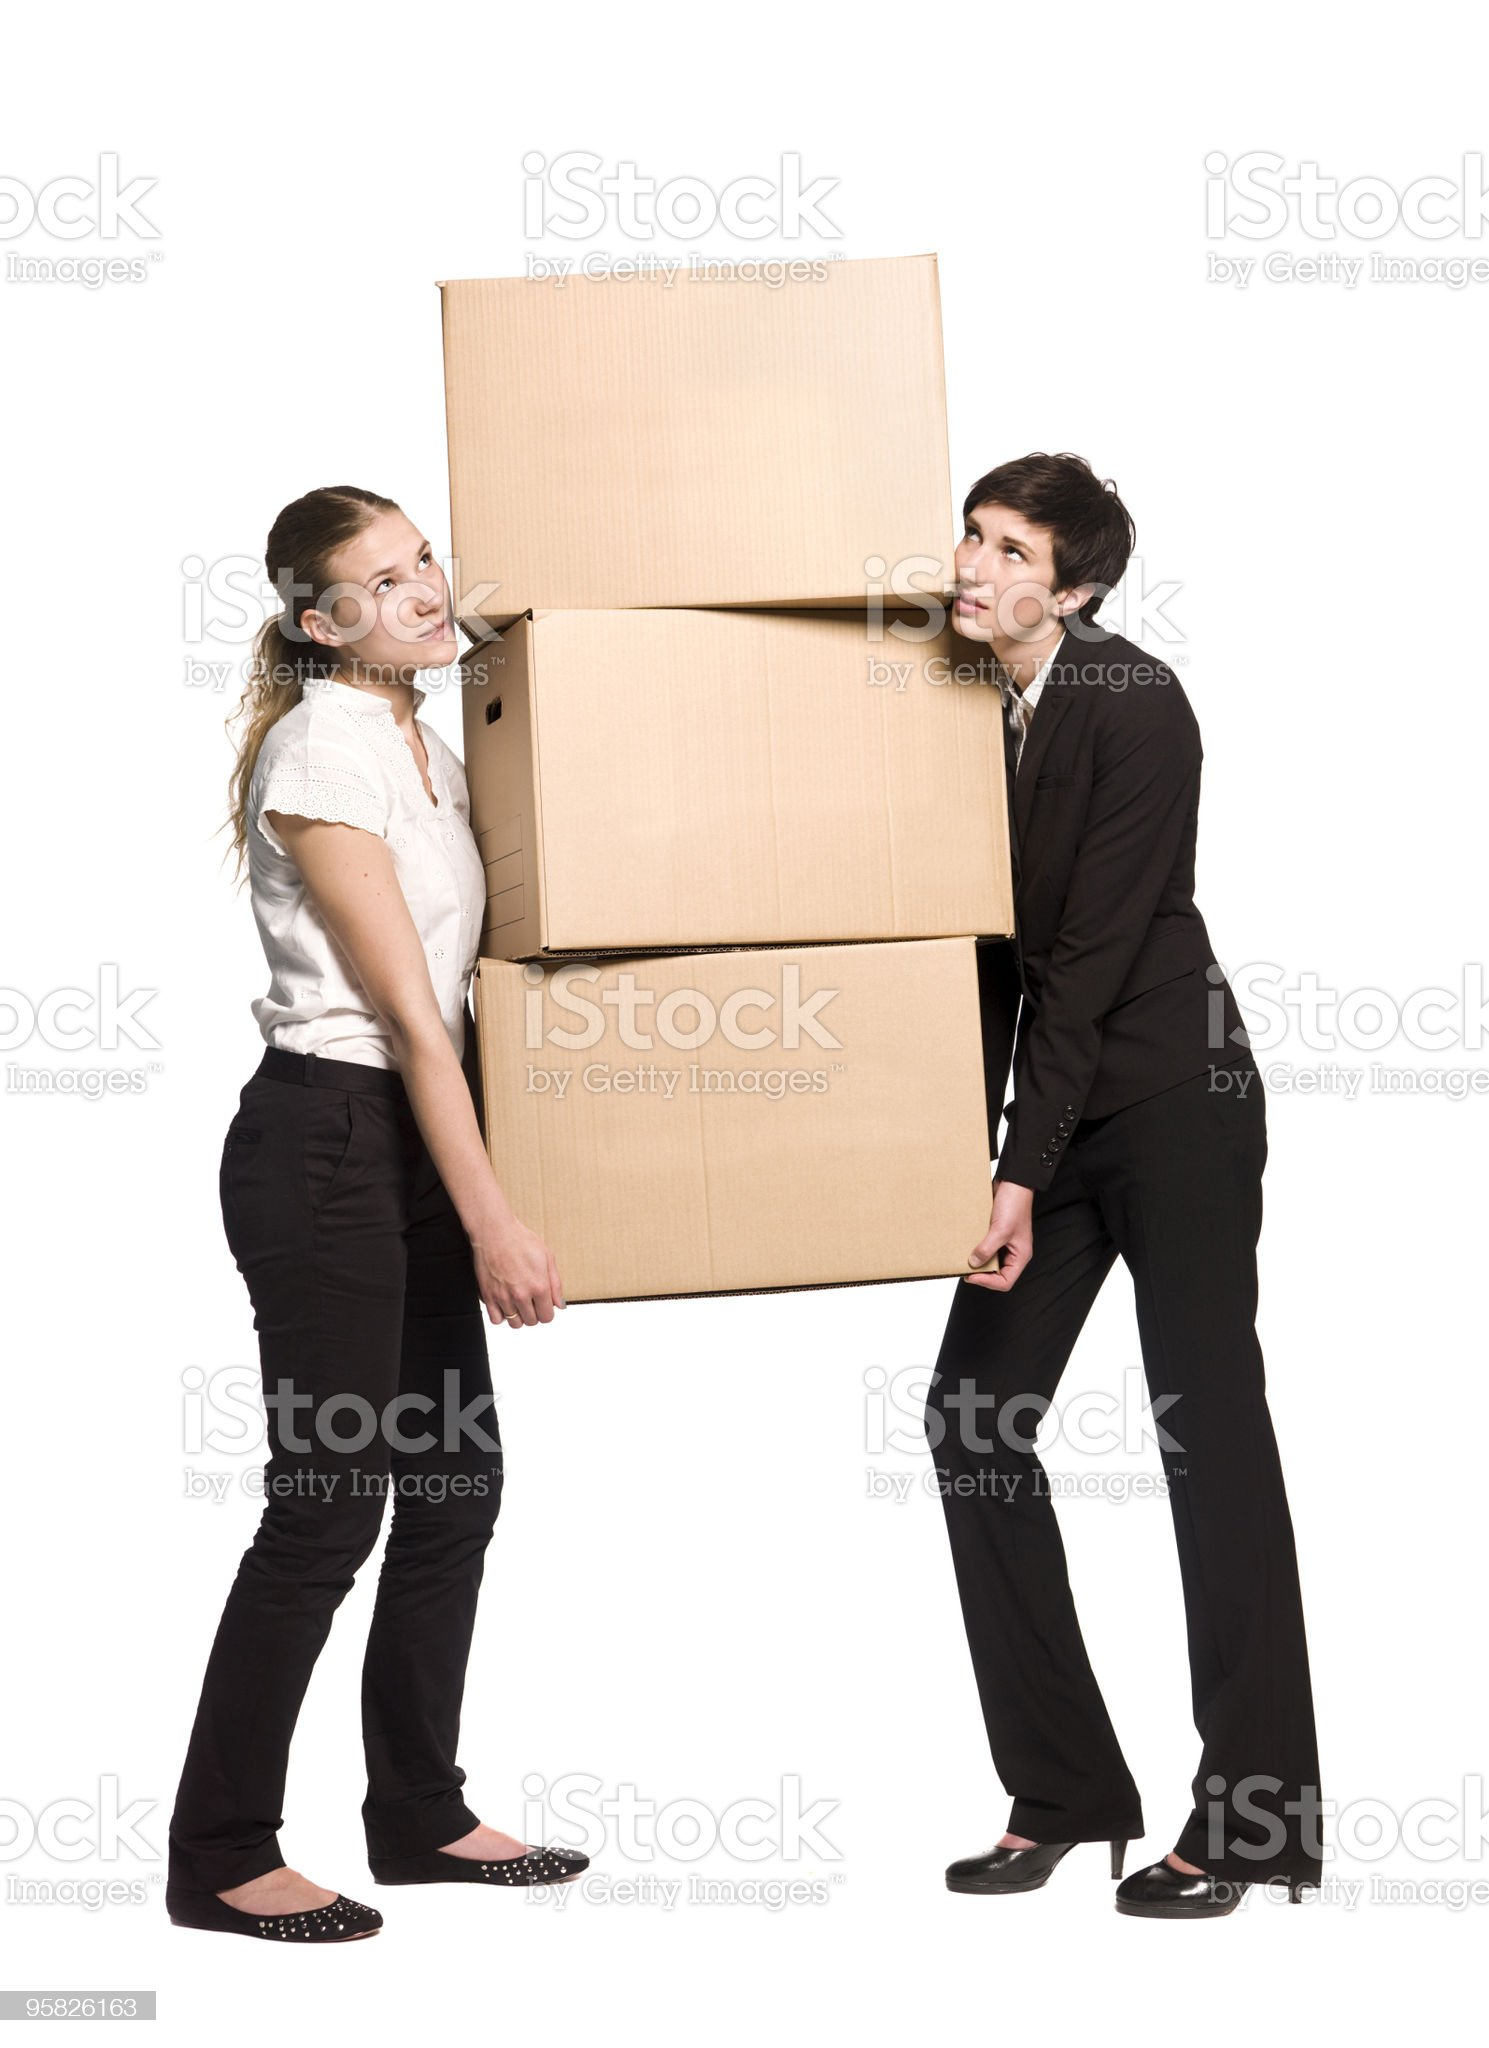 Women with cardboard boxes royalty-free stock photo